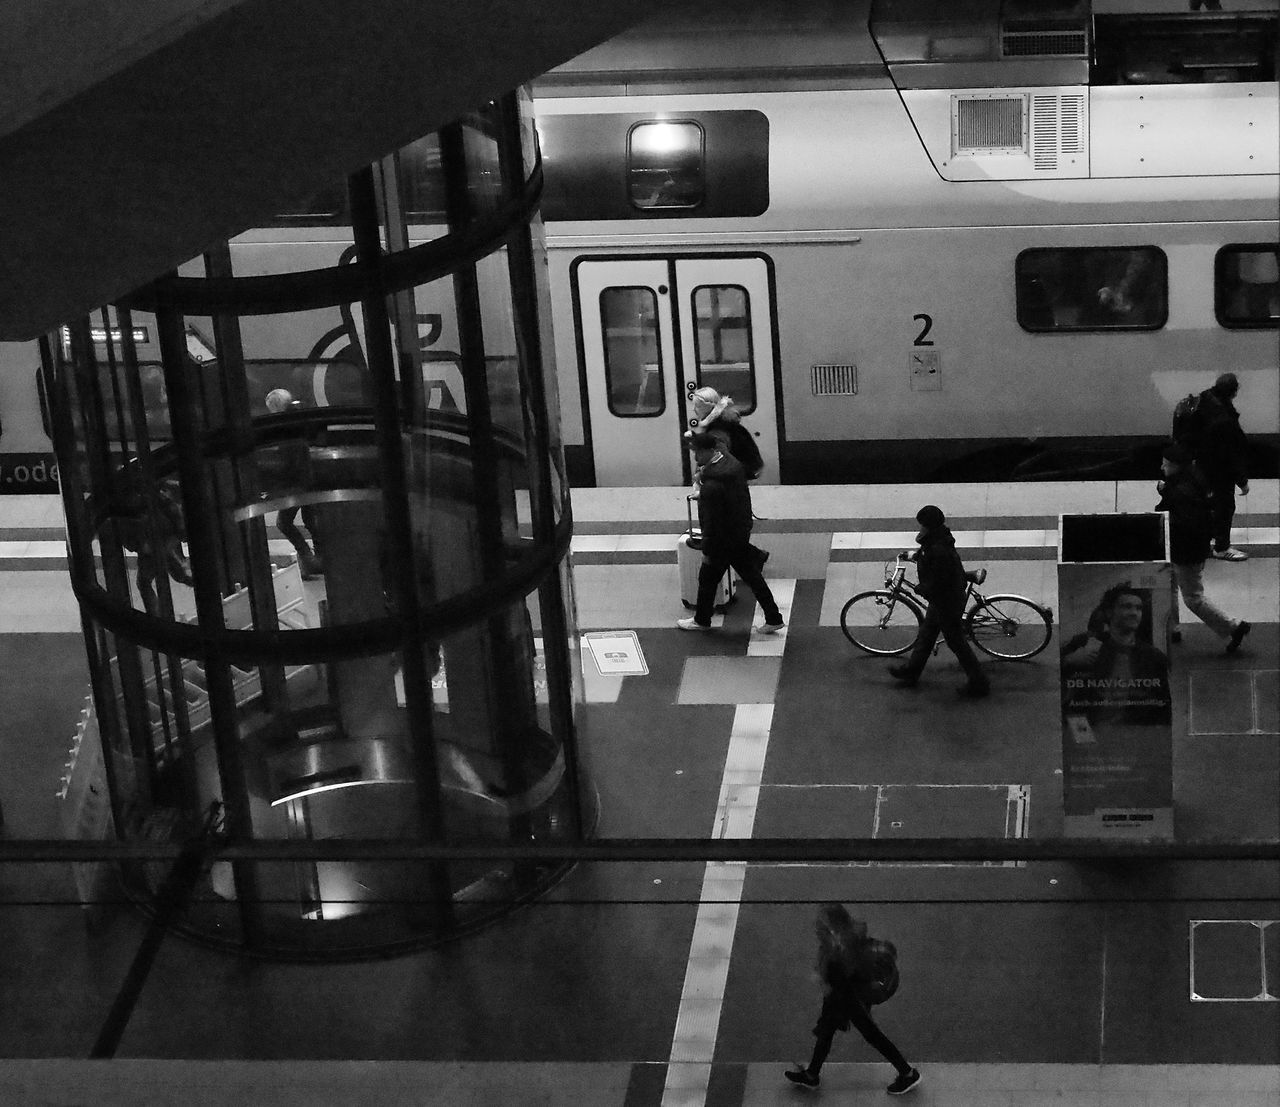 Busy People Central Train Station Medium Group Of People Public Transportation Railwaystation Real People Street Photography Streetphotography The Street Photographer - 2017 EyeEm Awards Train Train Station Train Station Platform Transportation